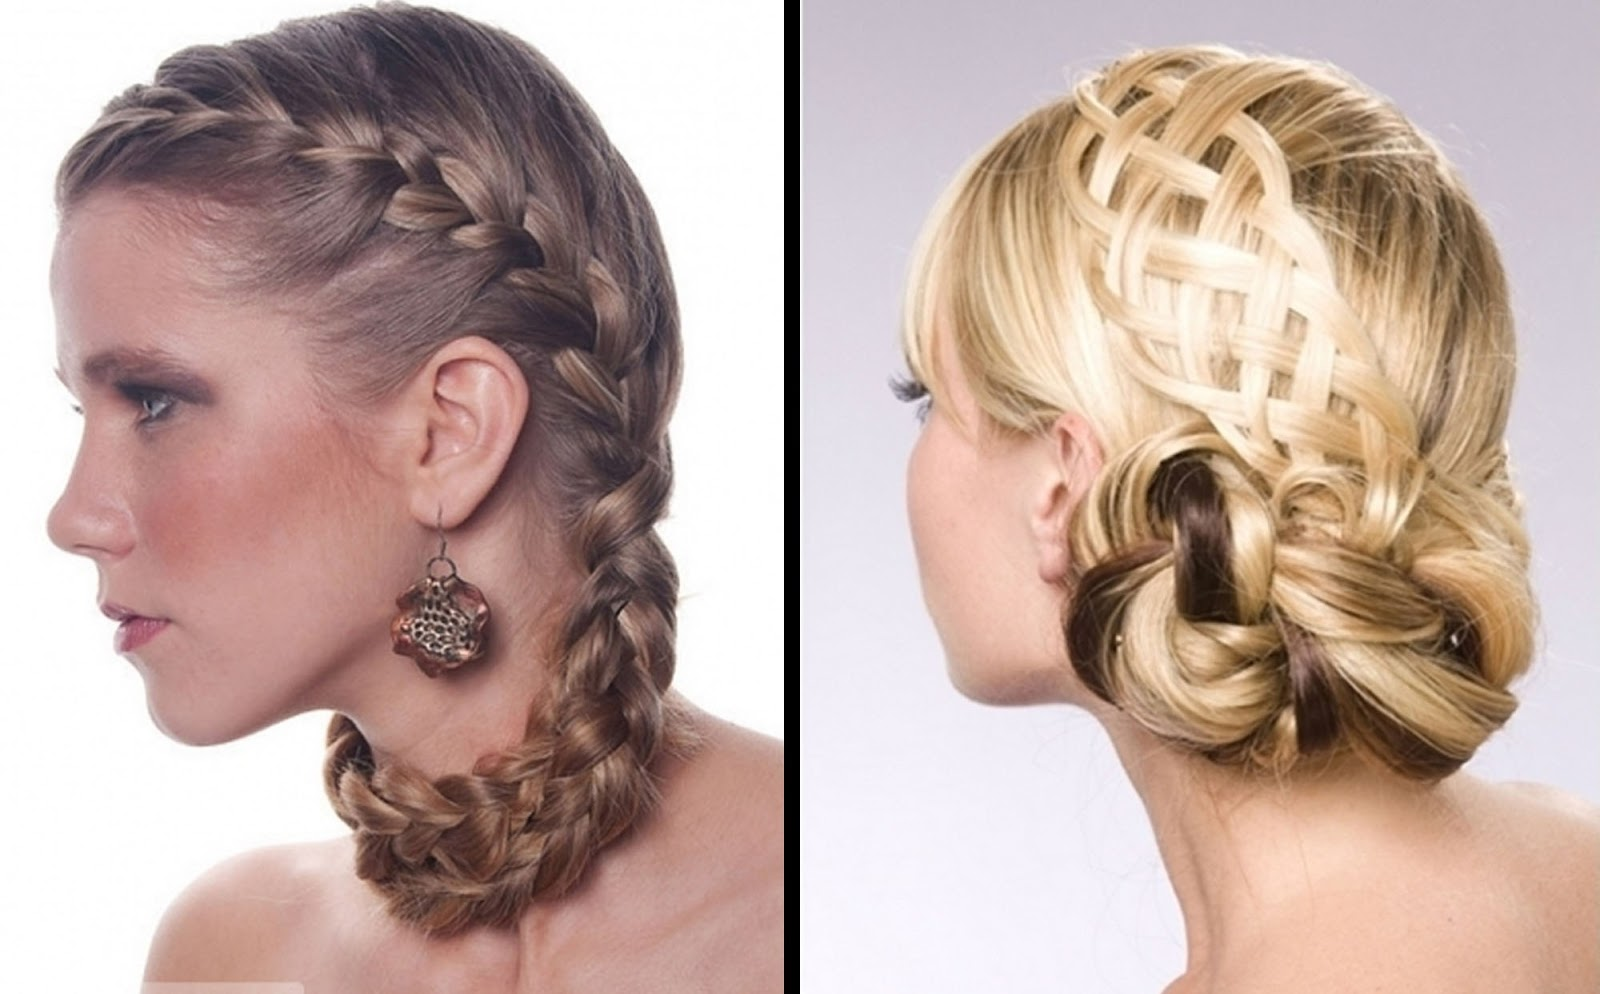 36 beautiful prom hairstyles for short hair girls | hairstylo